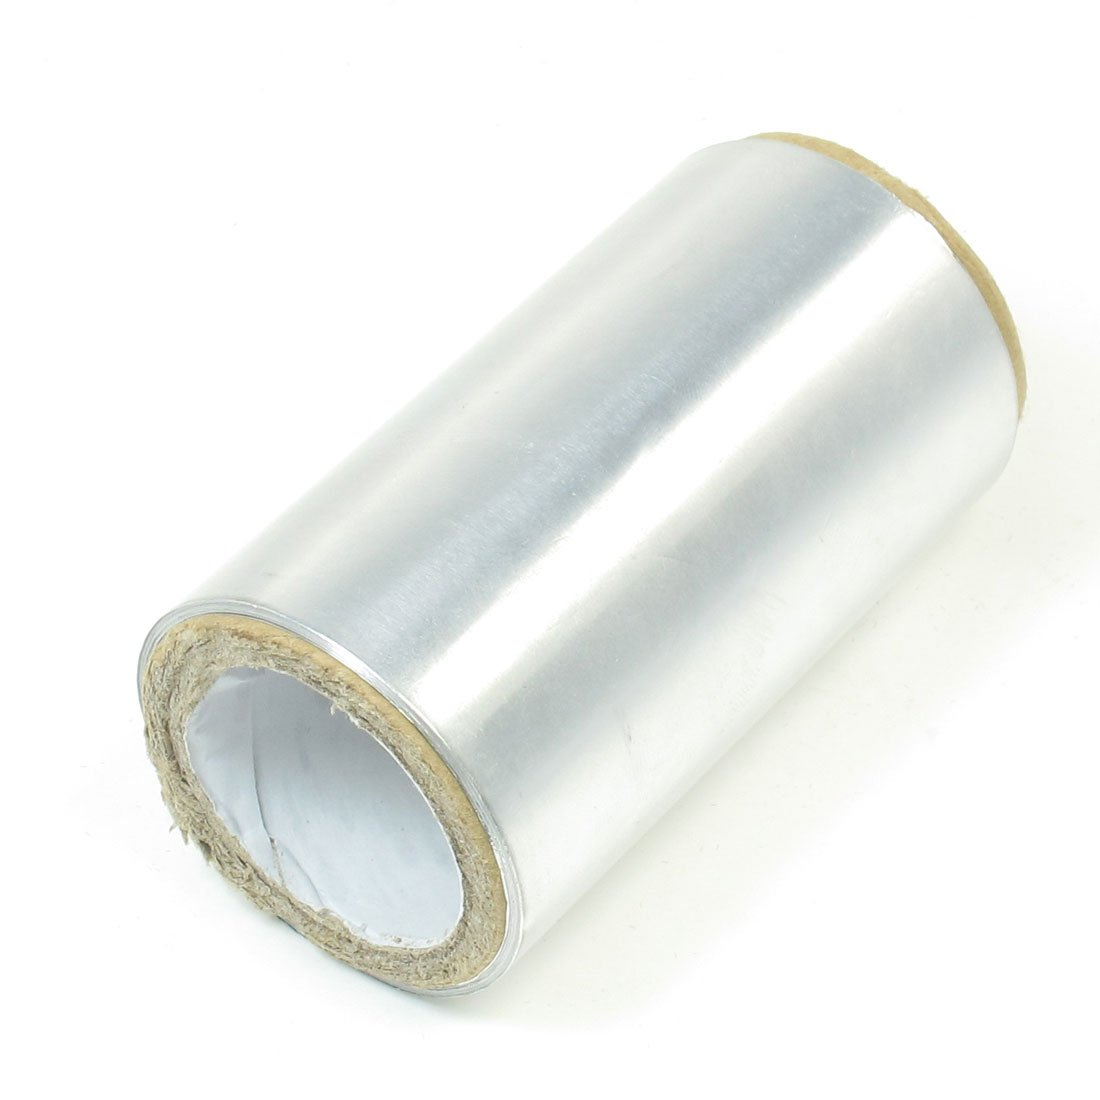 5 X 1 Roller Silver Tone 50m Hair Aluminium Foil Tape for Hairdressing(China (Mainland))